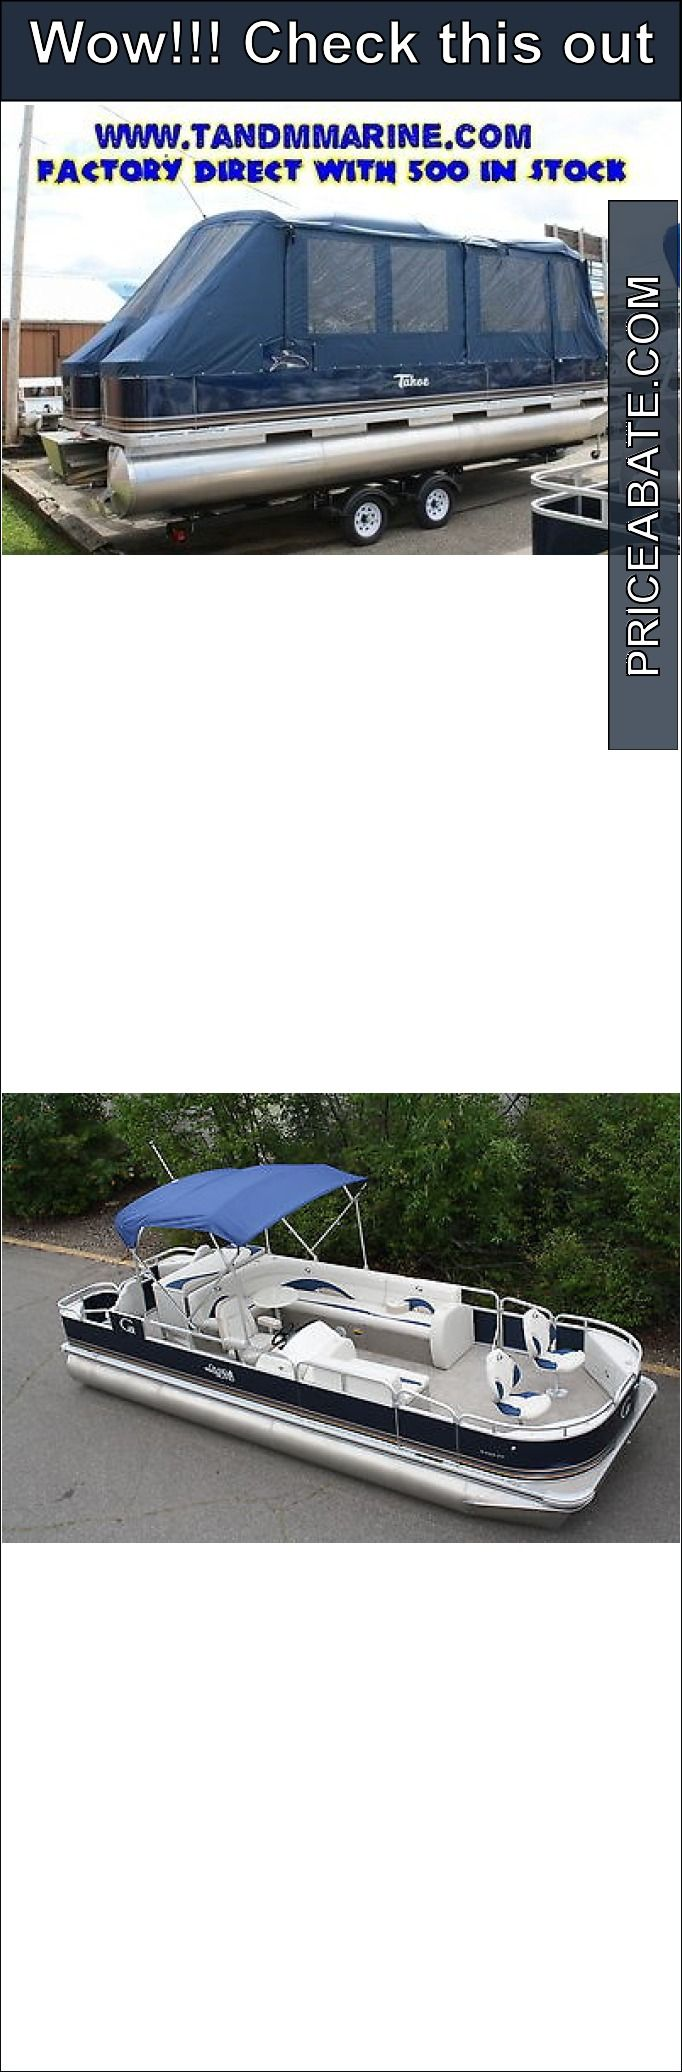 boats: New 24 fish and fun pontoon boat with full camper encloser #Boats - New 24 fish and fun pontoon boat with full camper encloser...